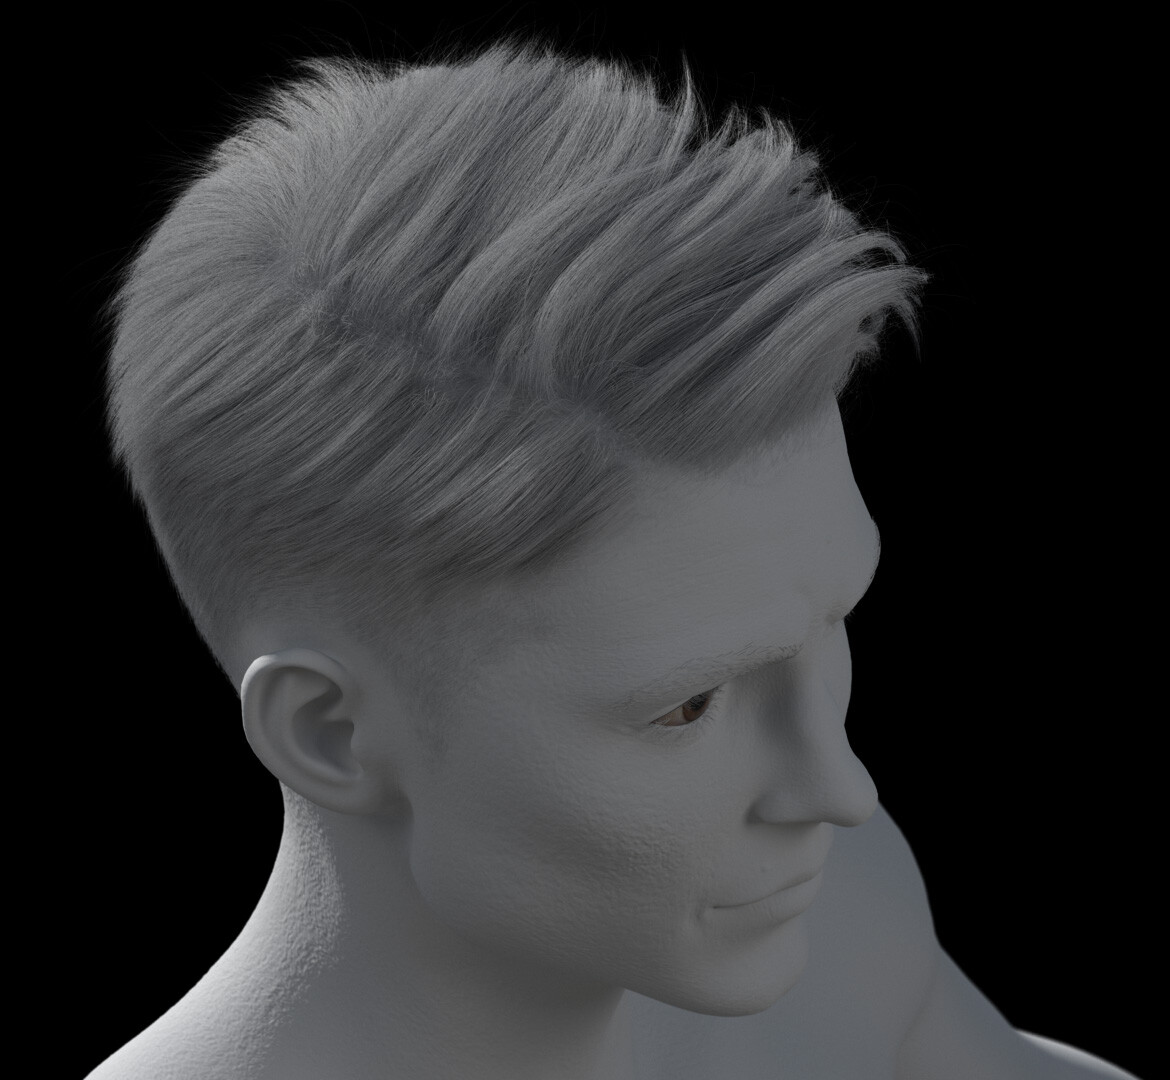 Andrew krivulya genry haircut 1 by akcharly shade 06